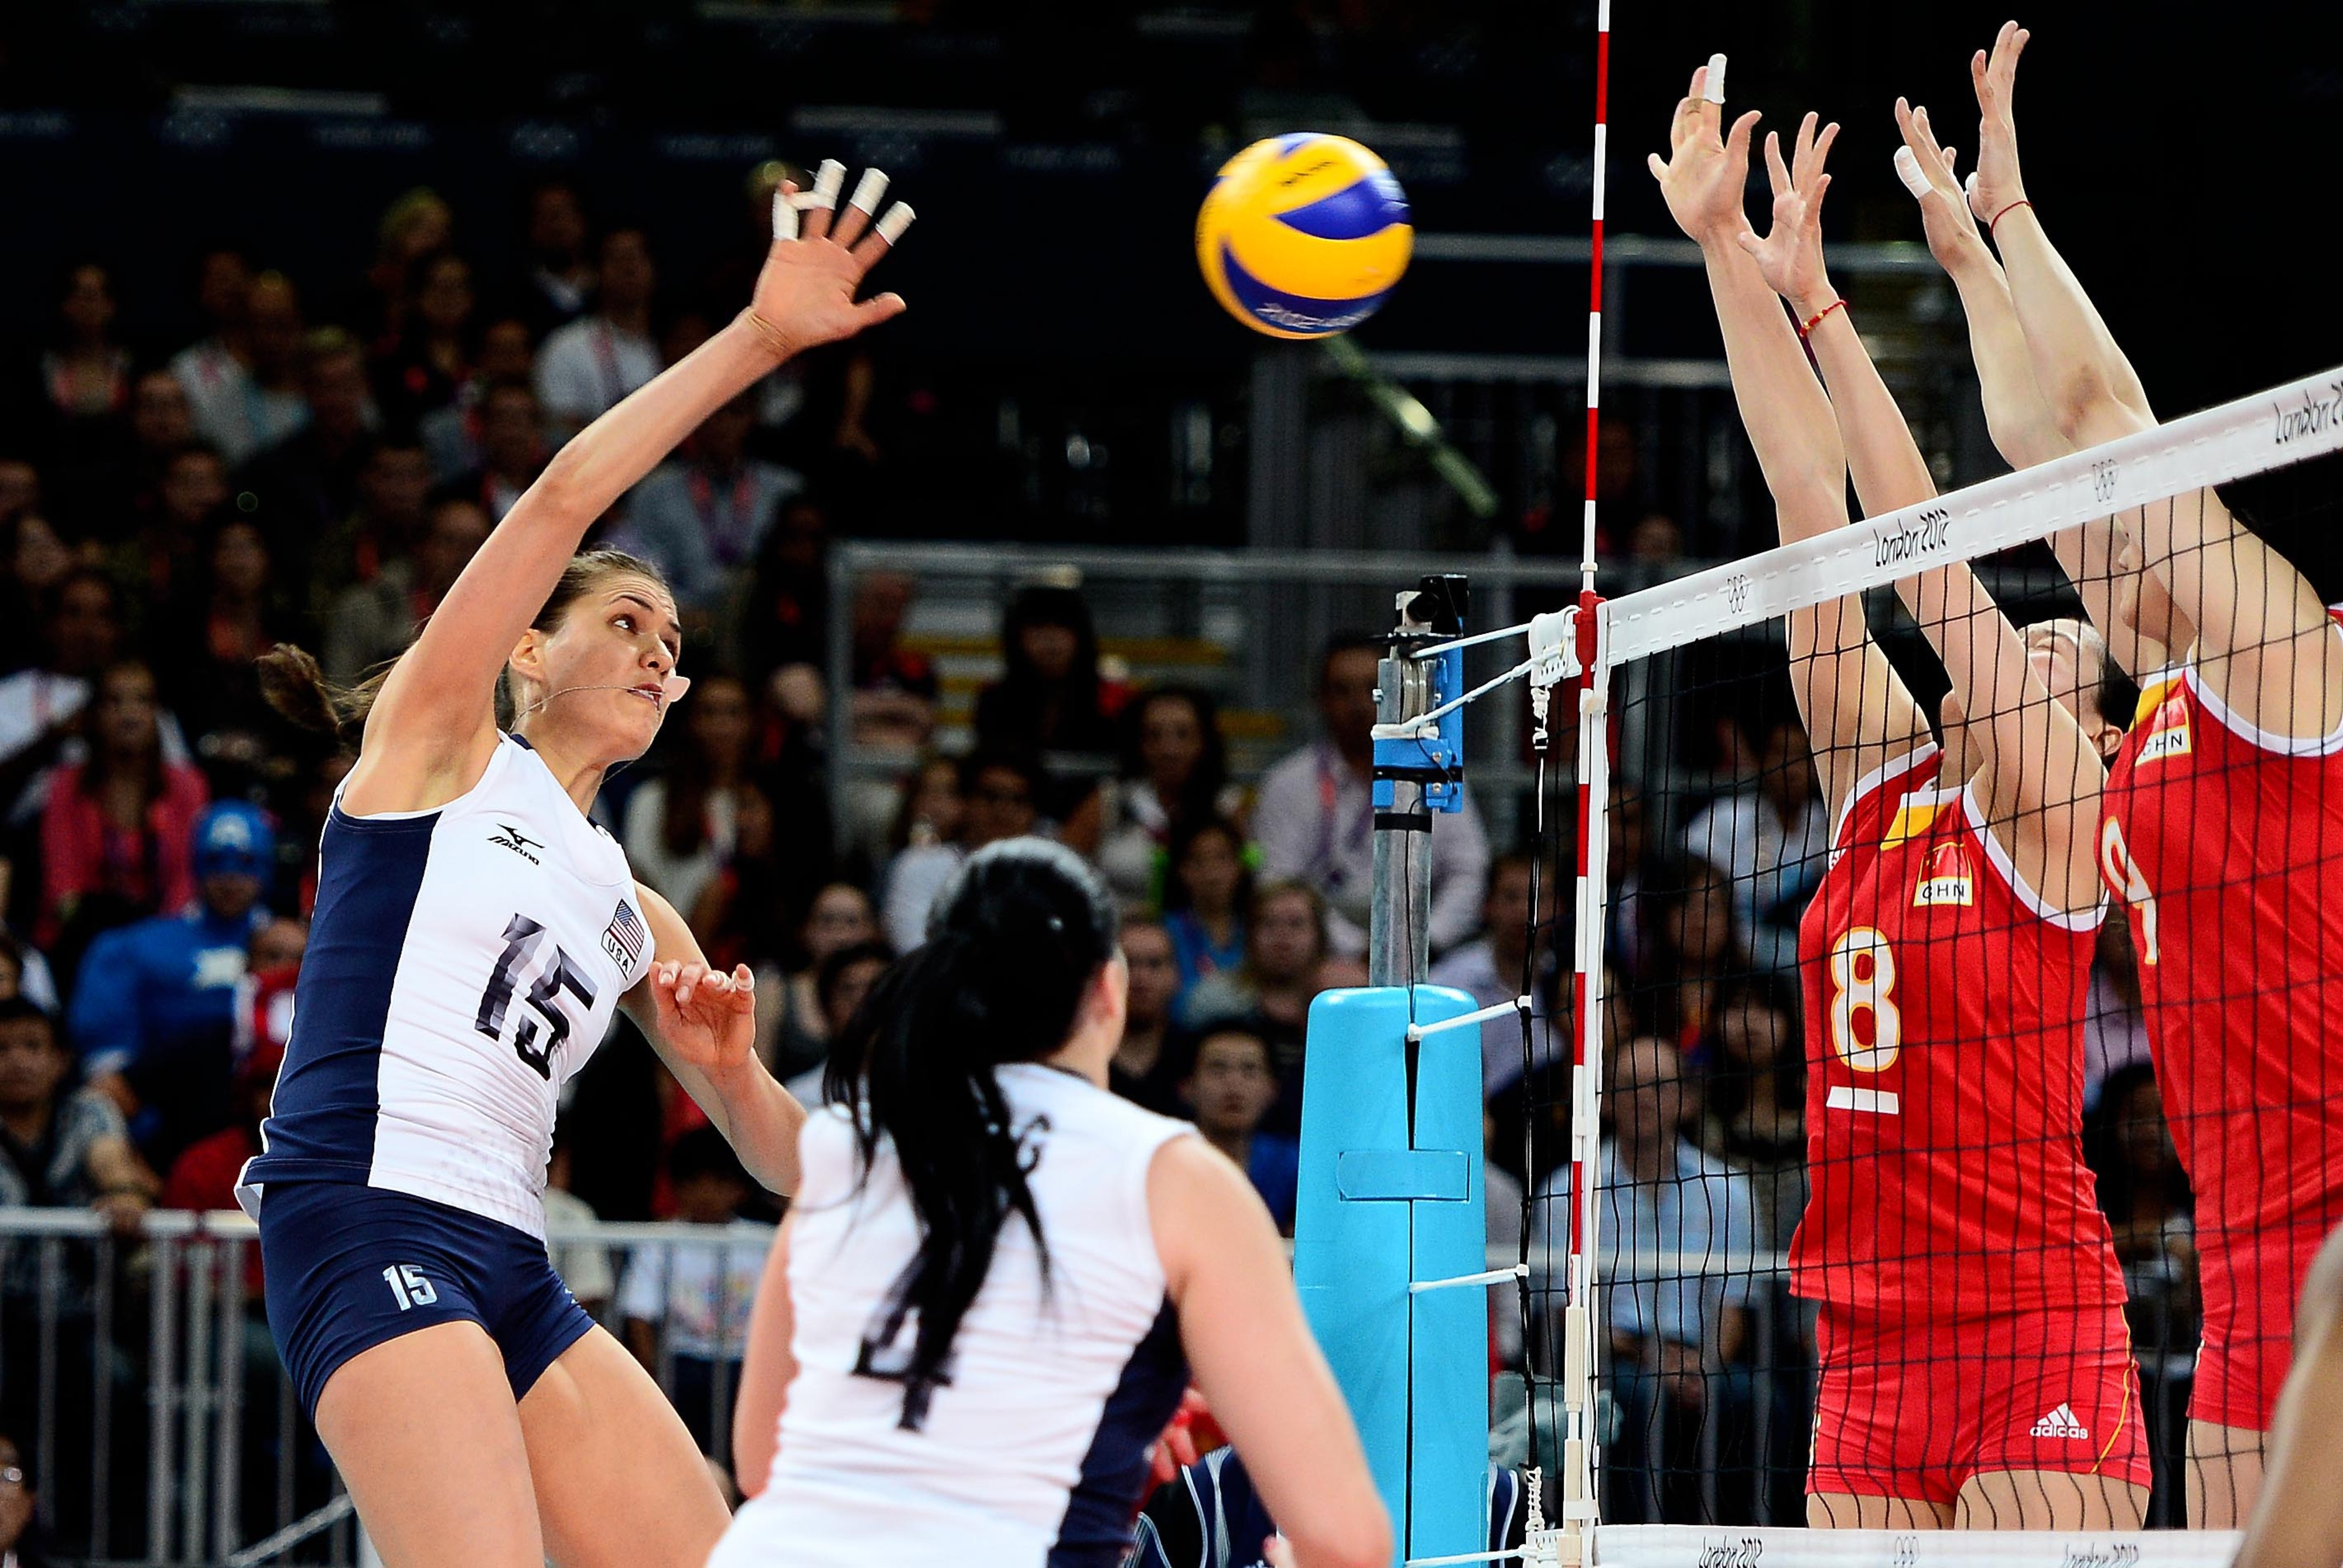 Sport Wallpaper Volleyball: Volleyball 4k Ultra HD Wallpaper And Background Image